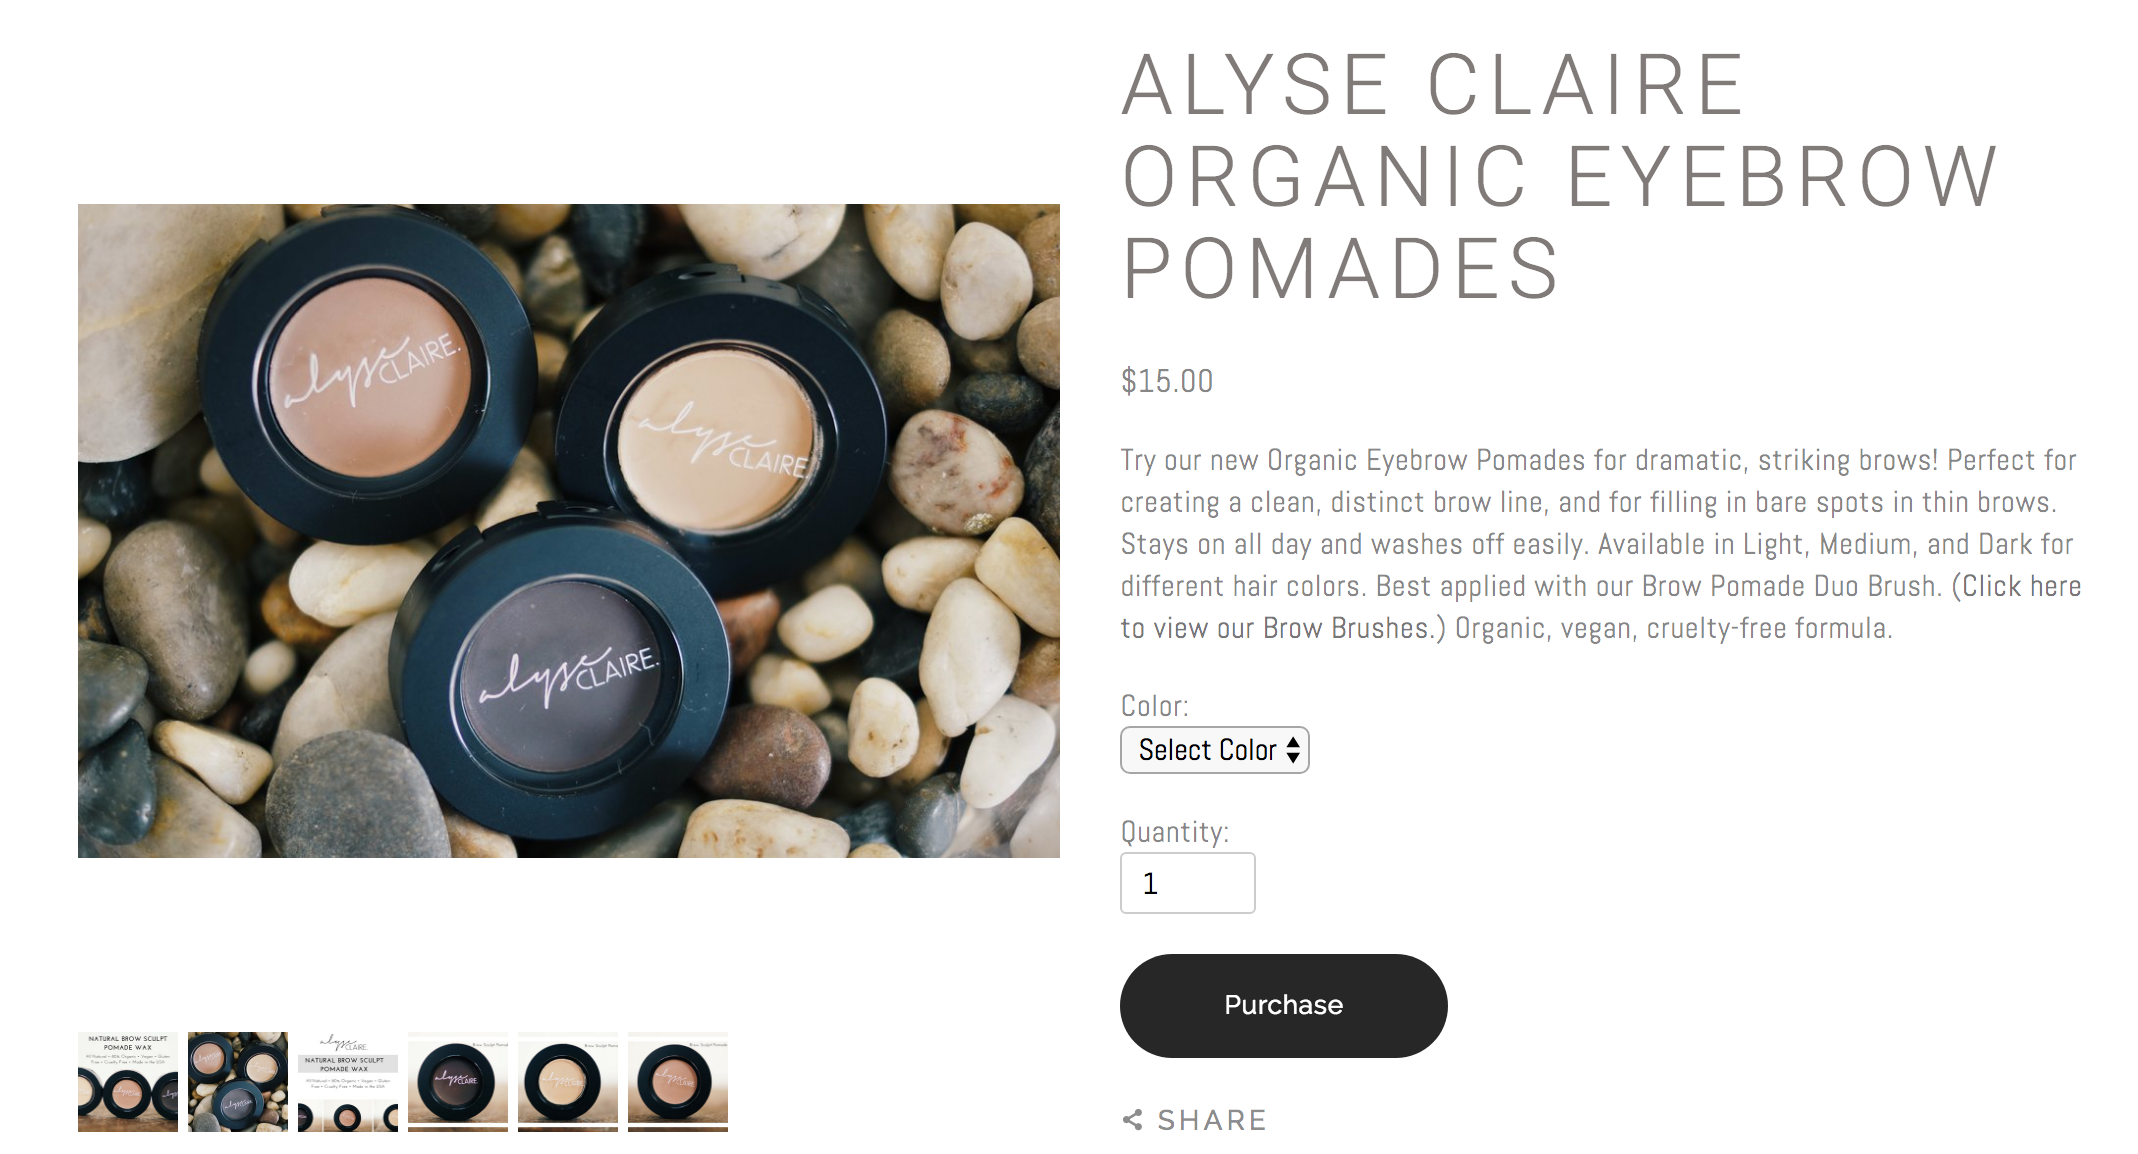 """The W Spa: eCommerce Product Page. """"Try our new Organic Eyebrow Pomades for dramatic, striking brows! Perfect for creating a clean, distinct brow line, and for filling in bare spots in thin brows. Stays on all day and washes off easily."""""""